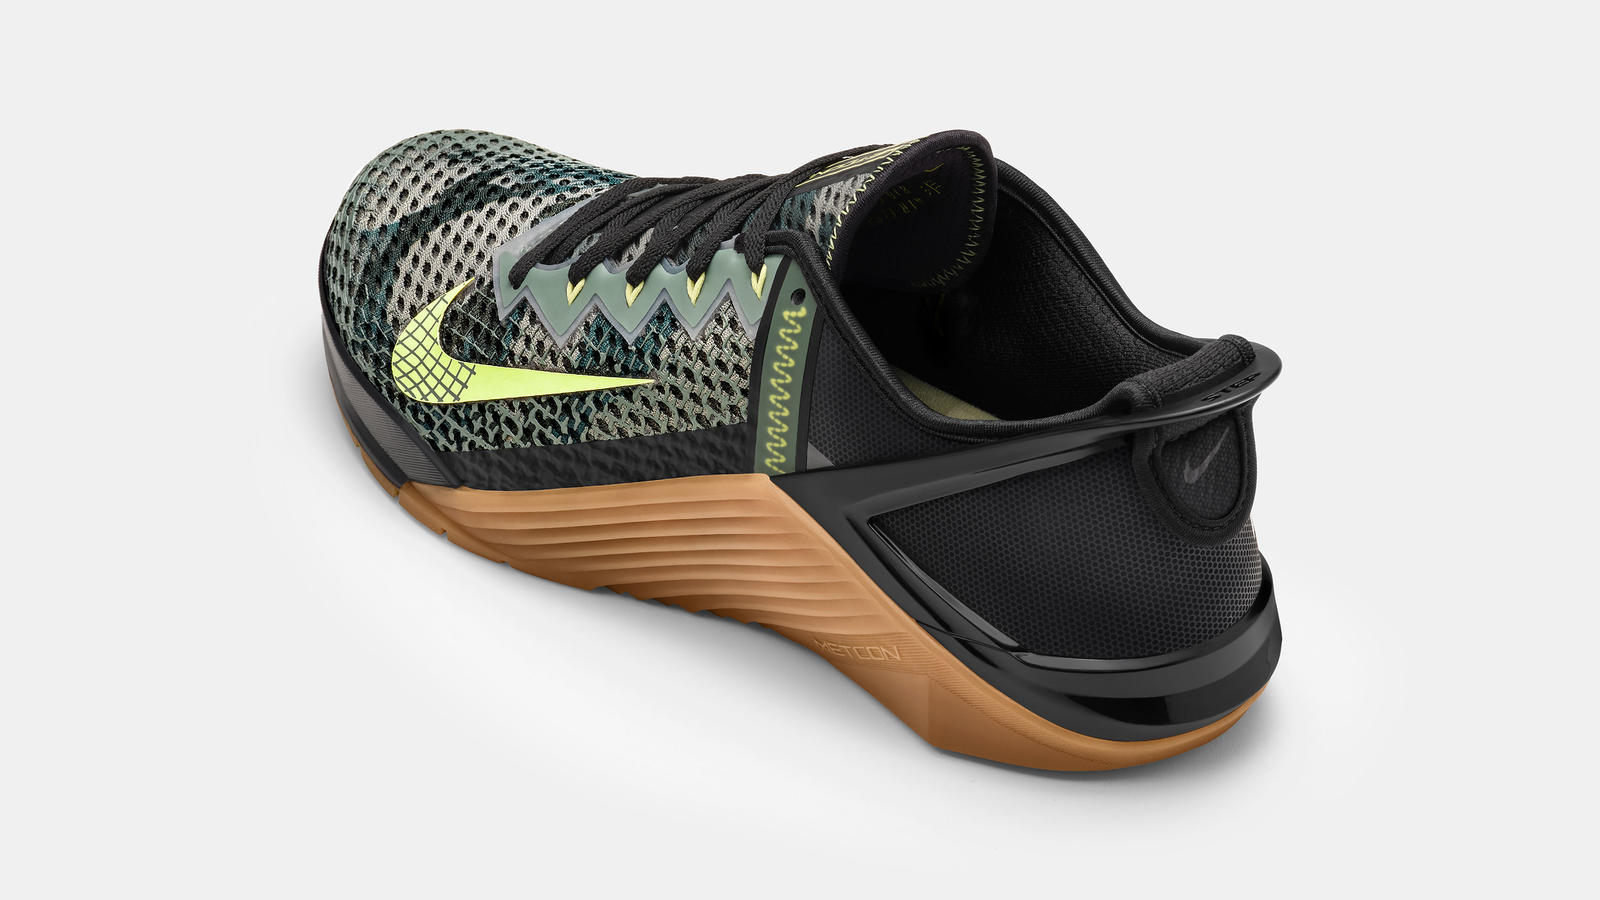 Nike Metcon 6 Official Images and Release Date 3